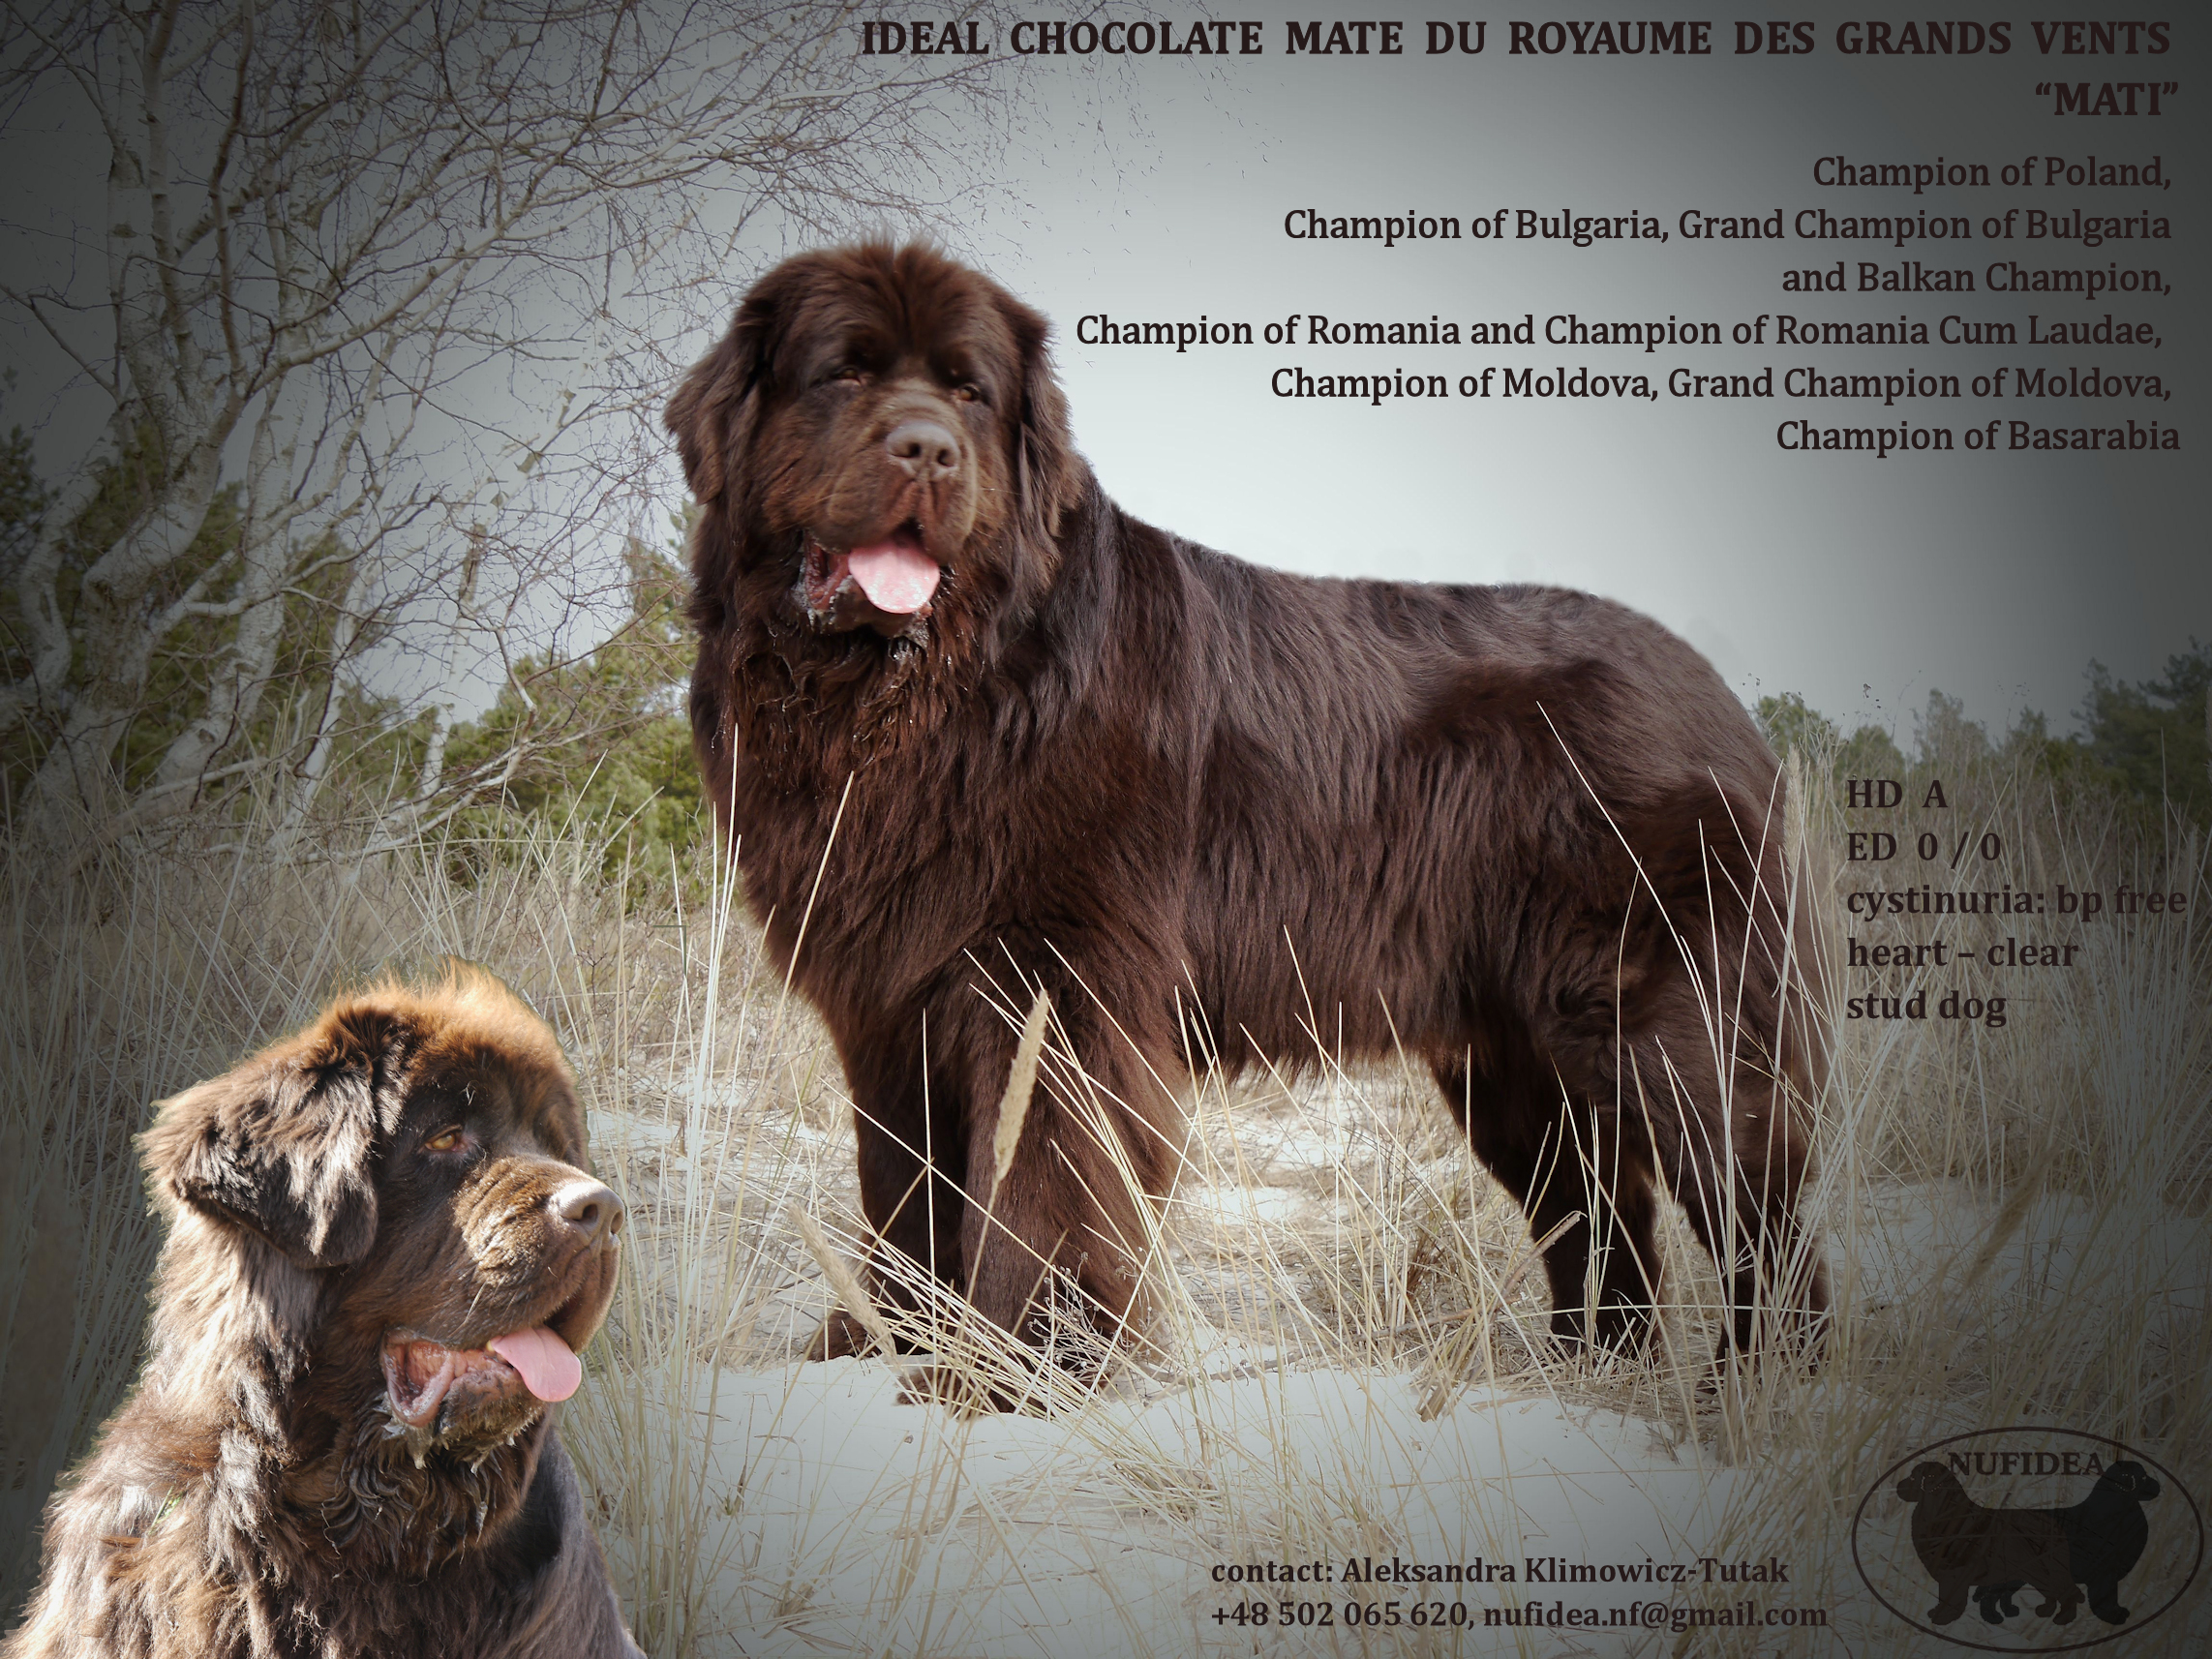 IDEAL CHOCOLATE MATE DU ROYAUME DES GRANDS VENTS_stud_dog_s